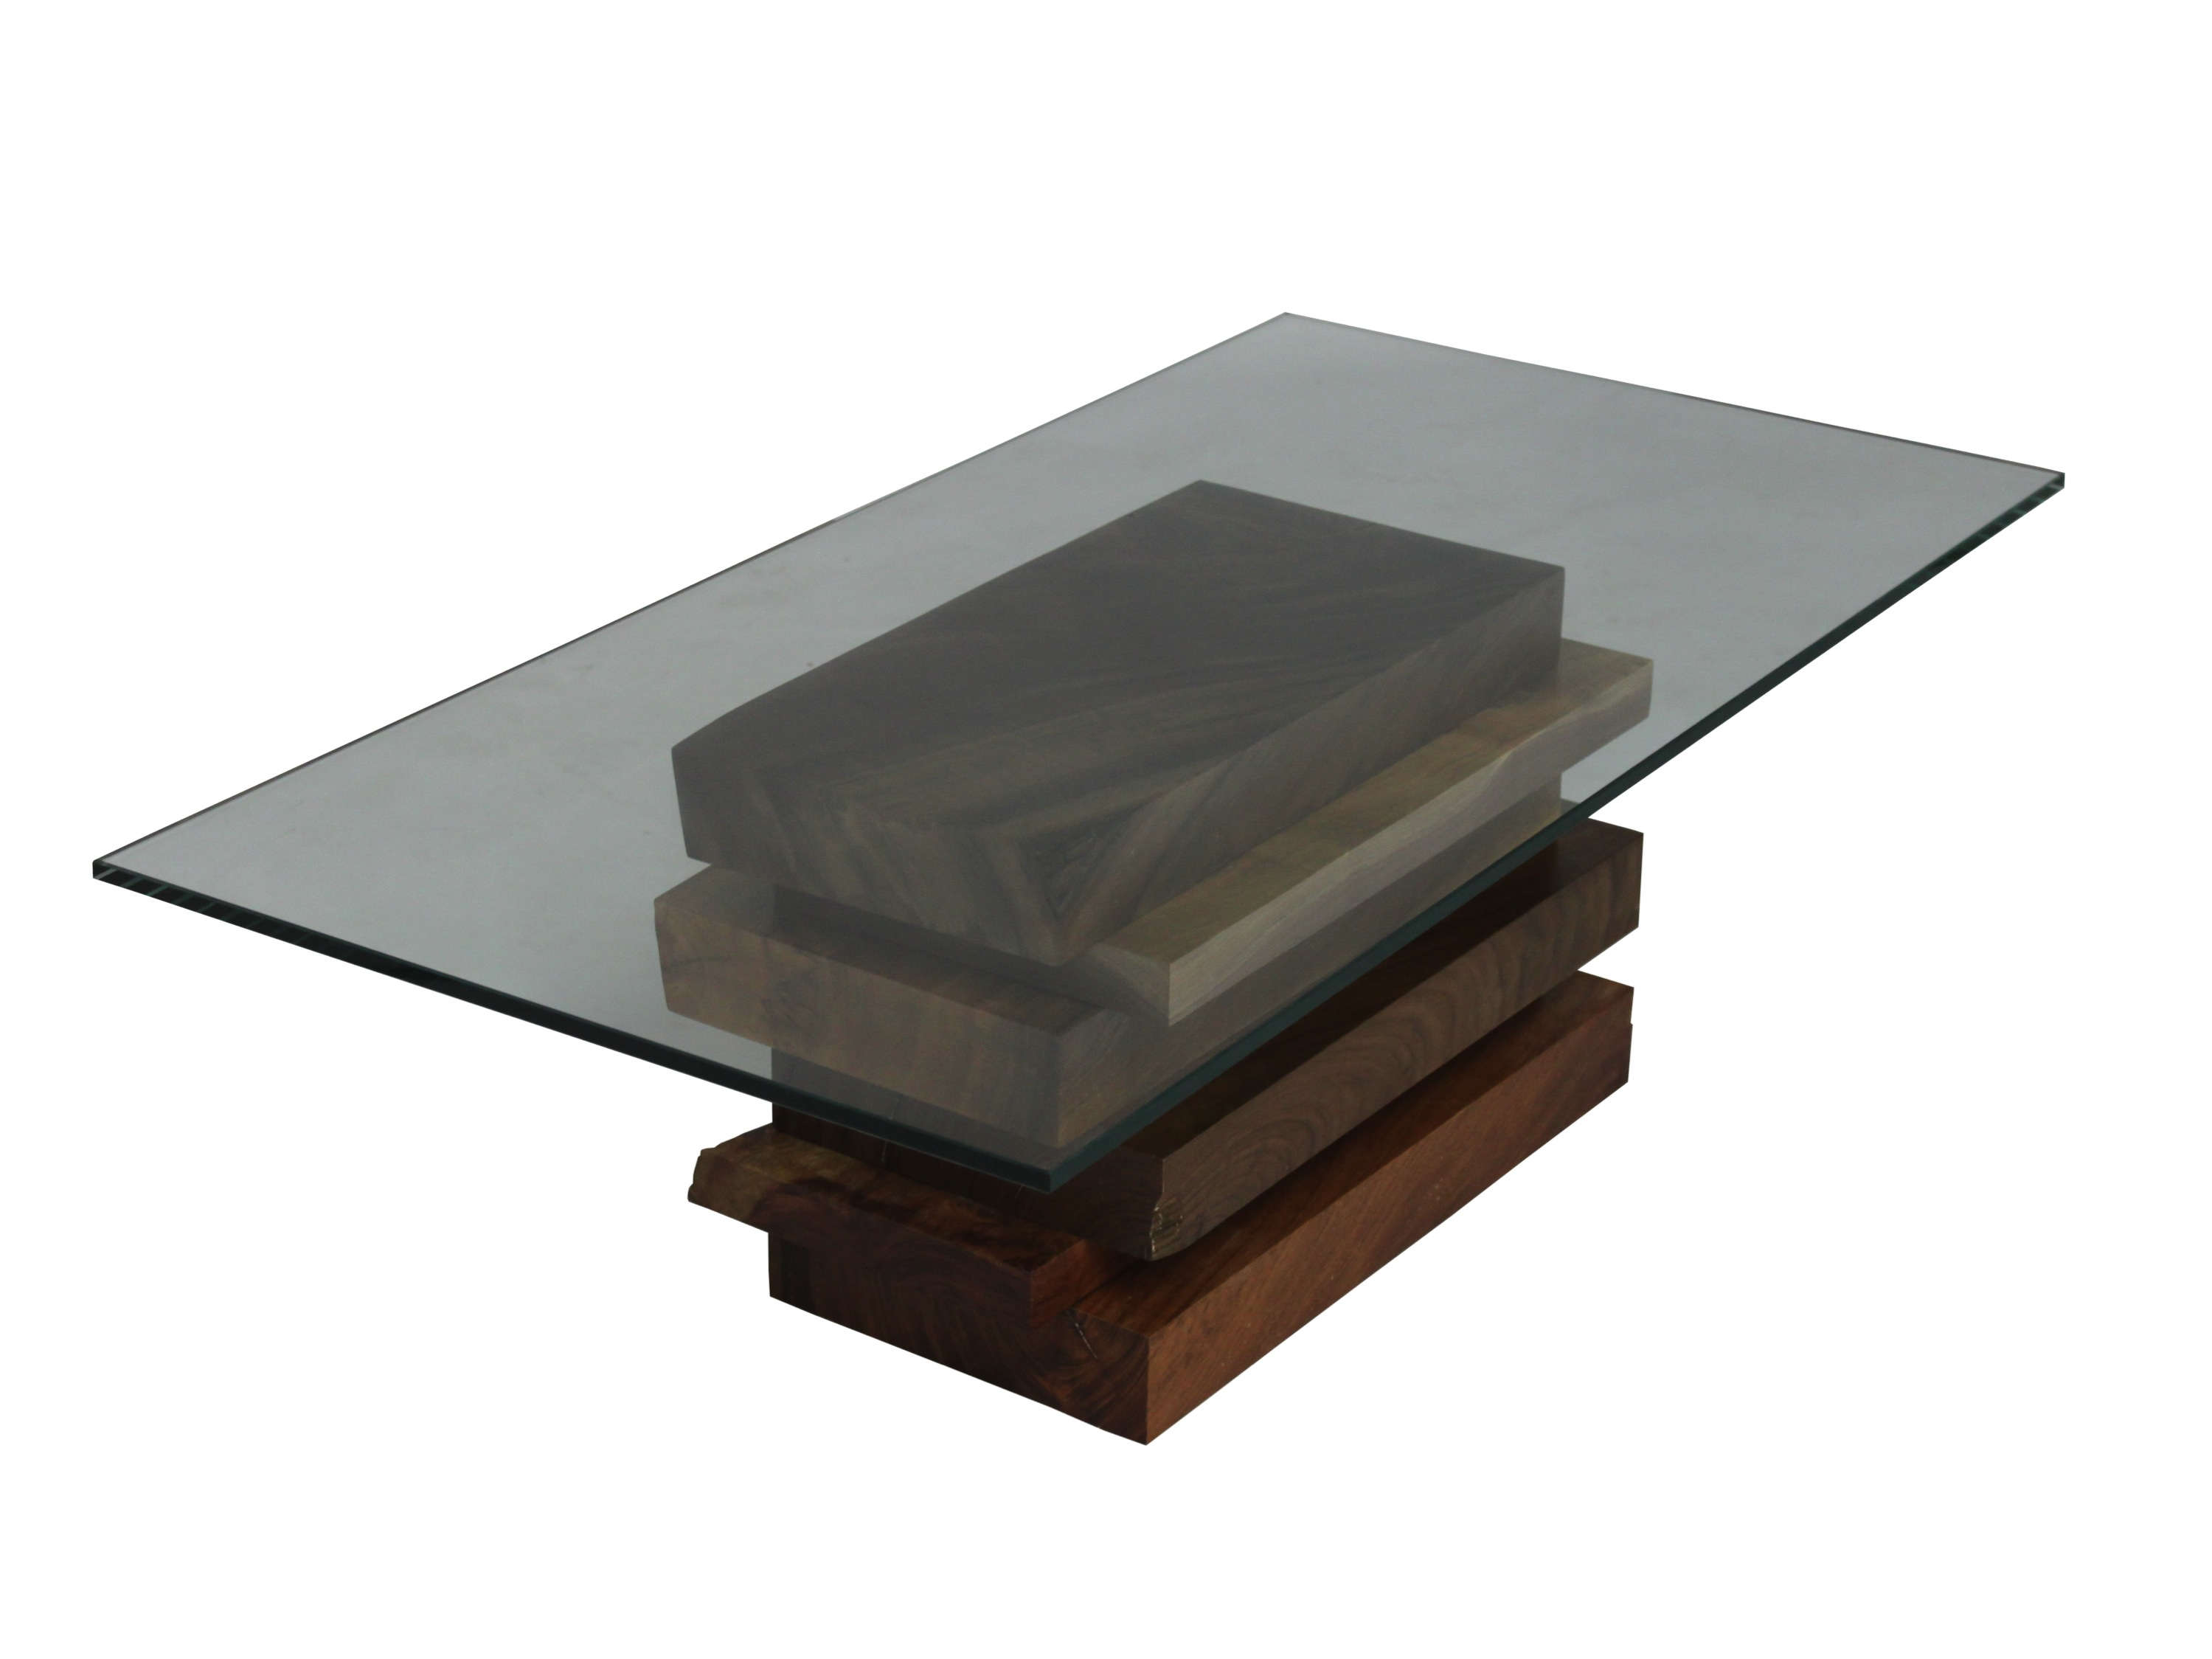 Wooden Coffee Table With Glass Top Glass Top Coffee Table Made With Salvaged Wood Slabs In Raw Edge Or Straight Edges (View 7 of 11)